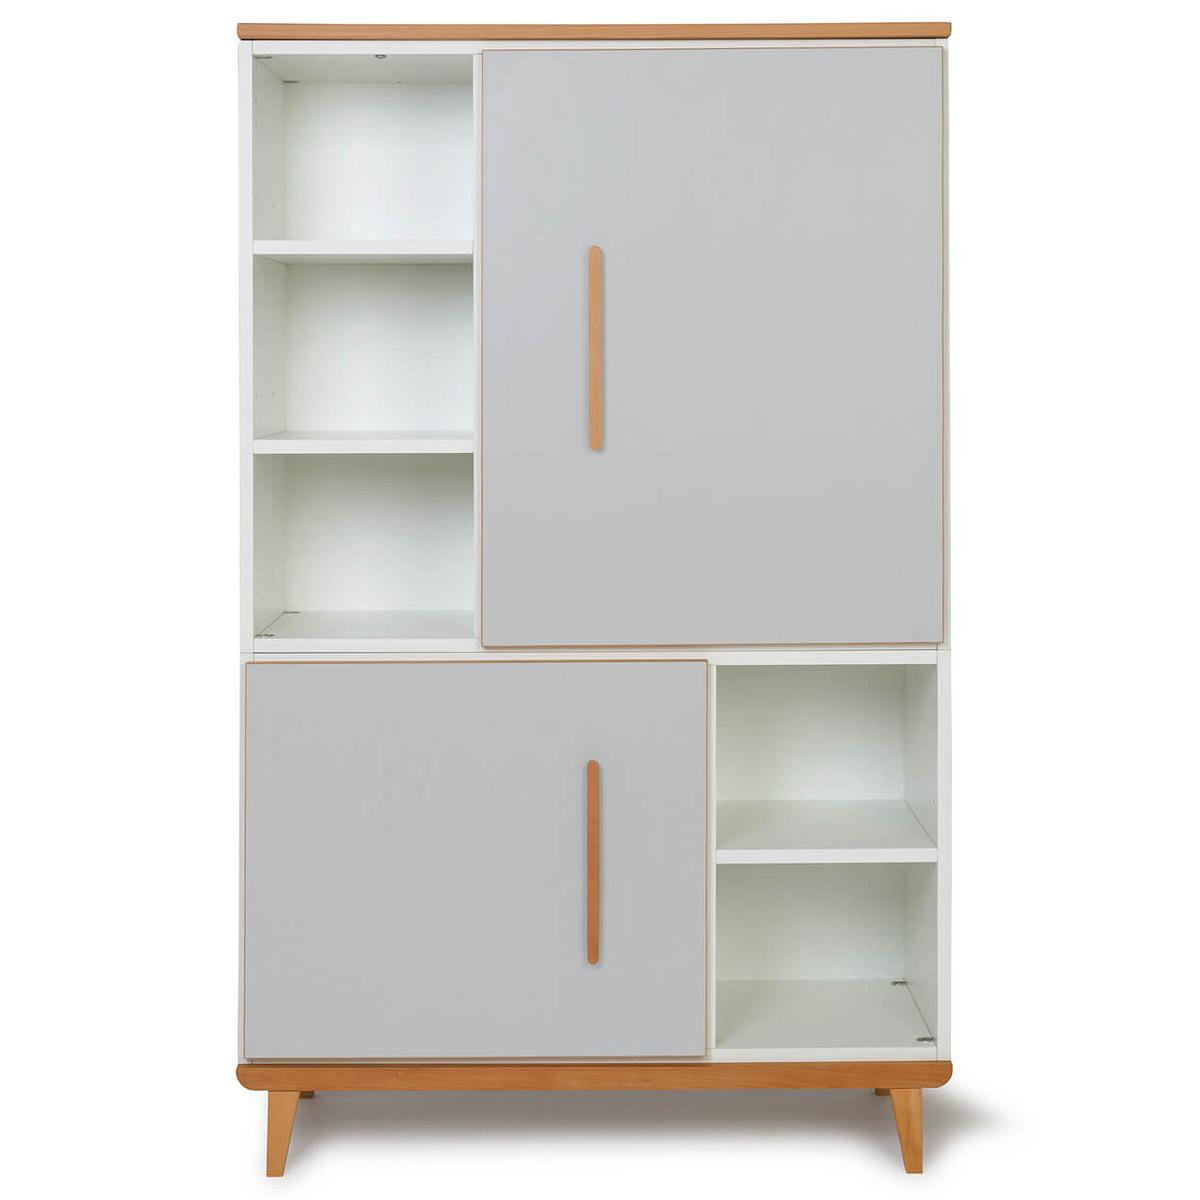 Armoire 147cm 2 portes NADO By A.K. manhattan grey